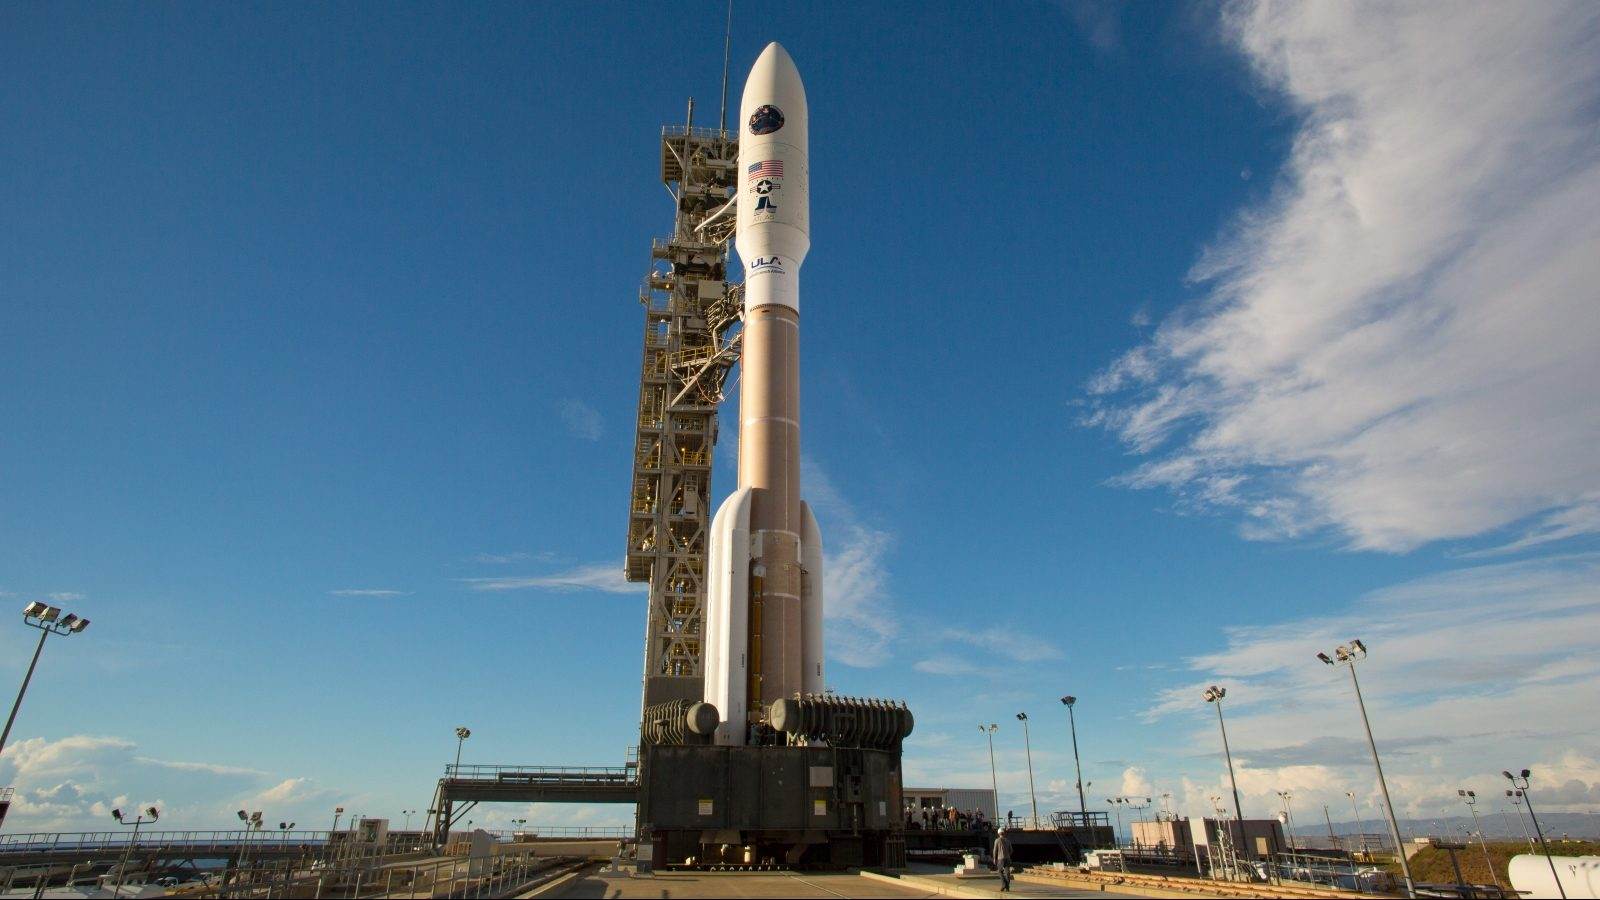 Secret spy satellite launches from Vandenberg AFB